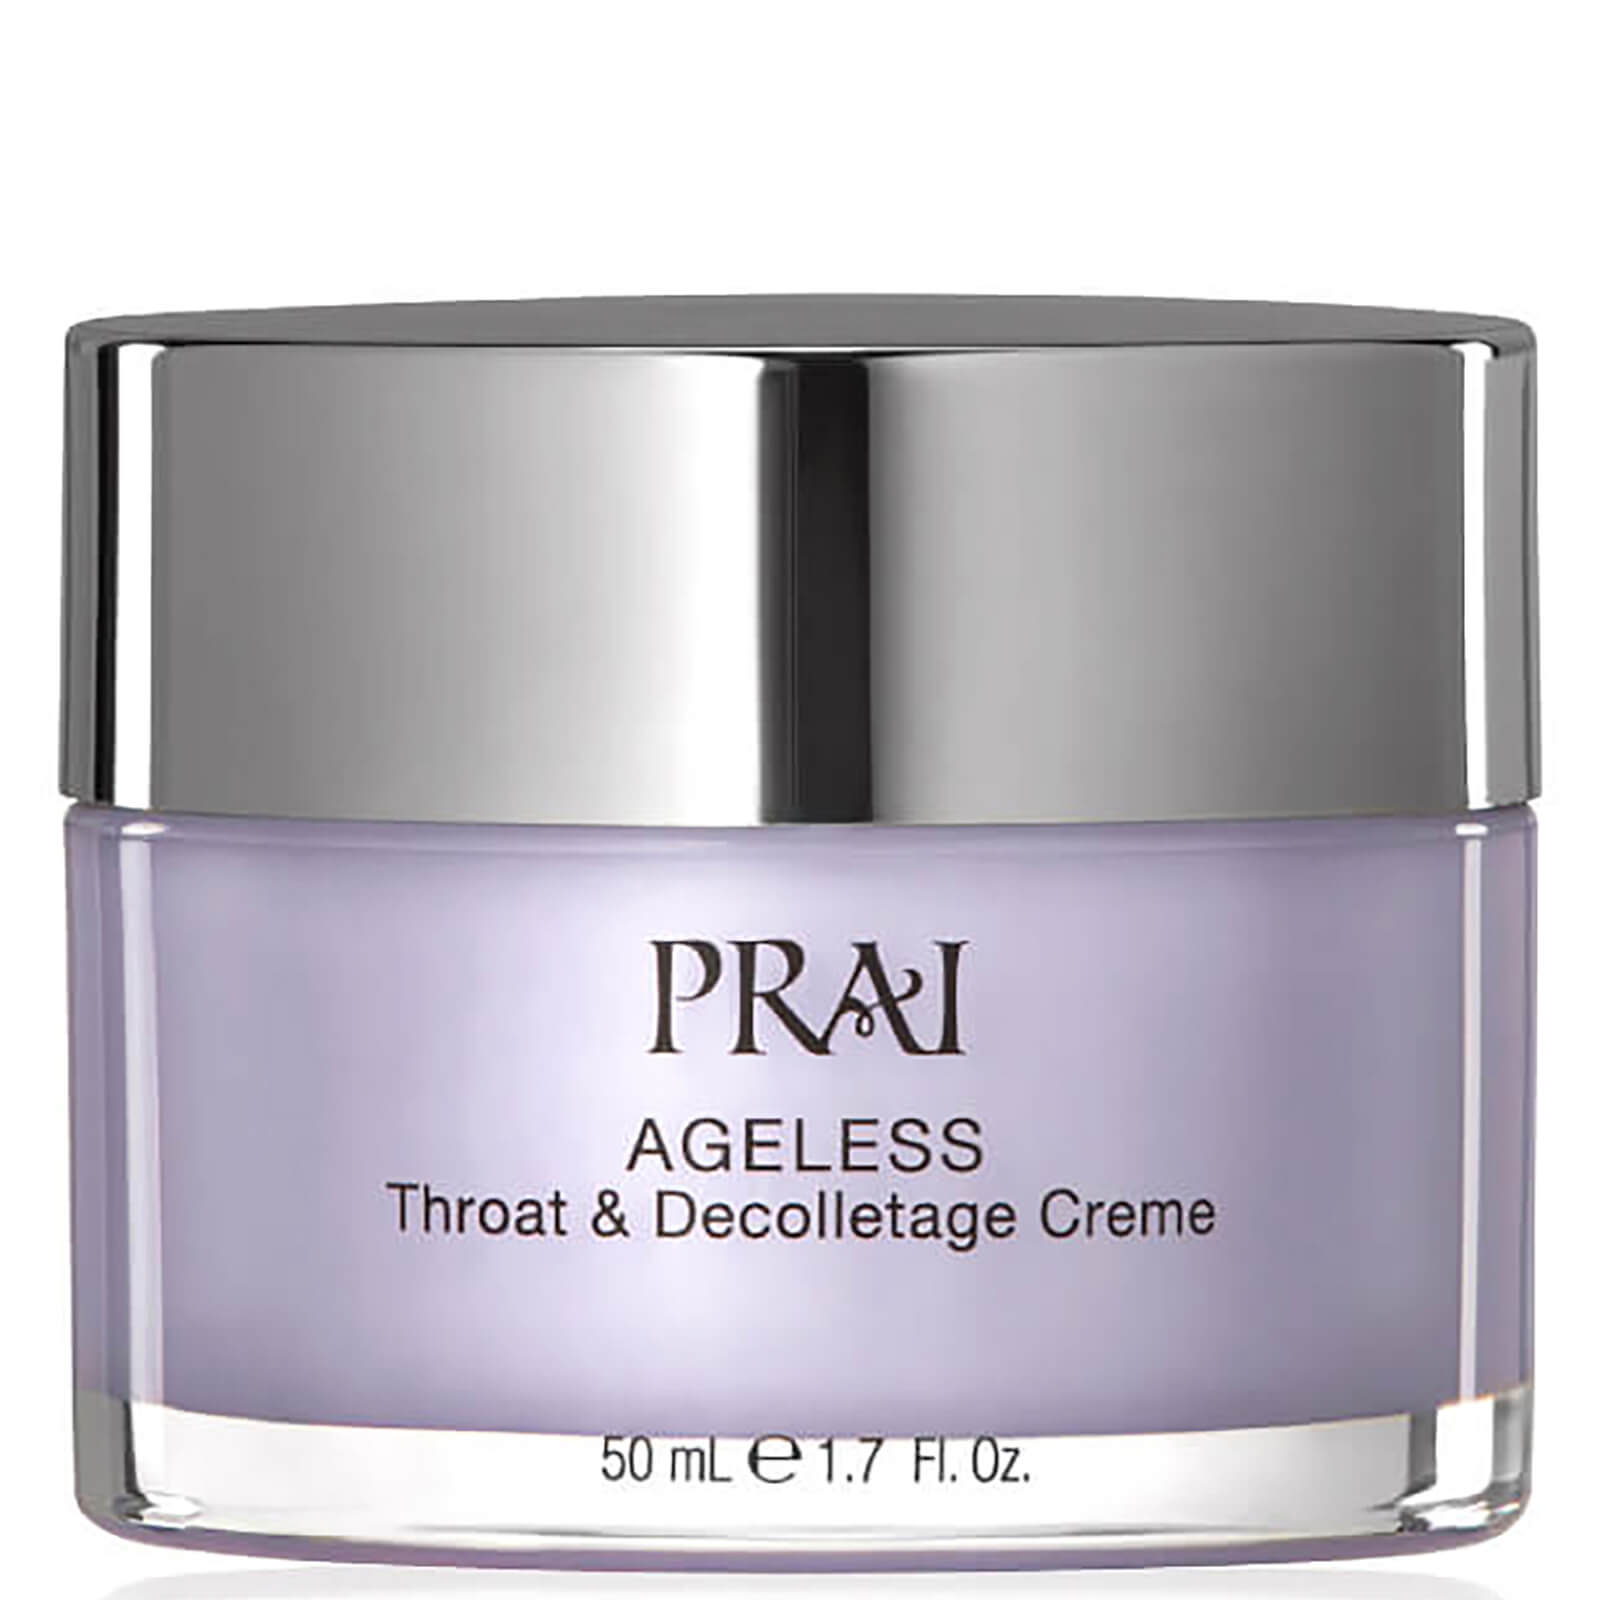 PRAI AGELESS crema collo e décolleté (50 ml)